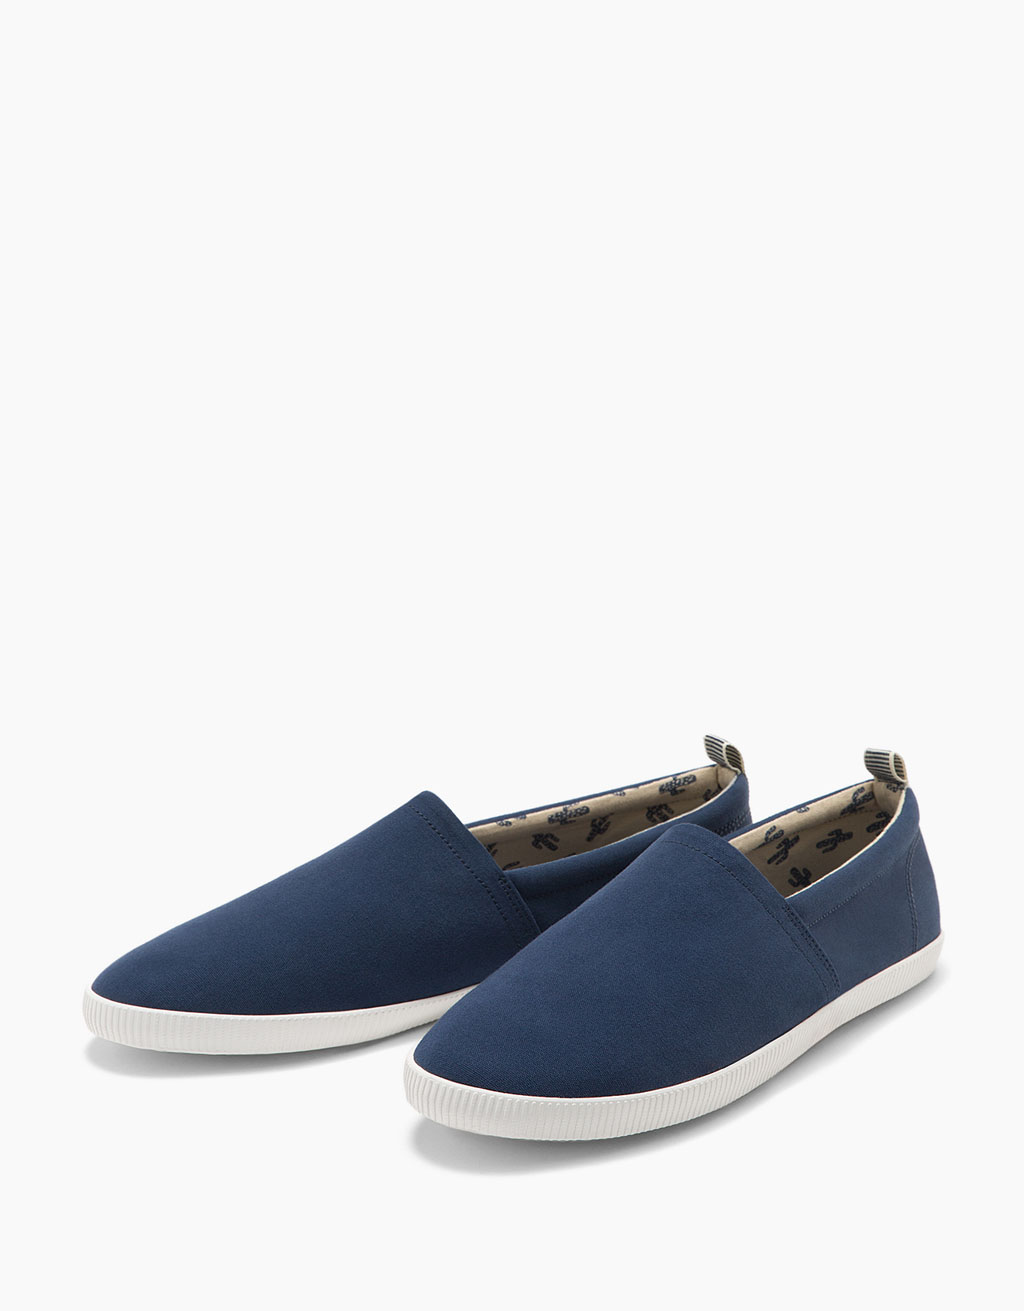 Men's fabric plimsolls without laces